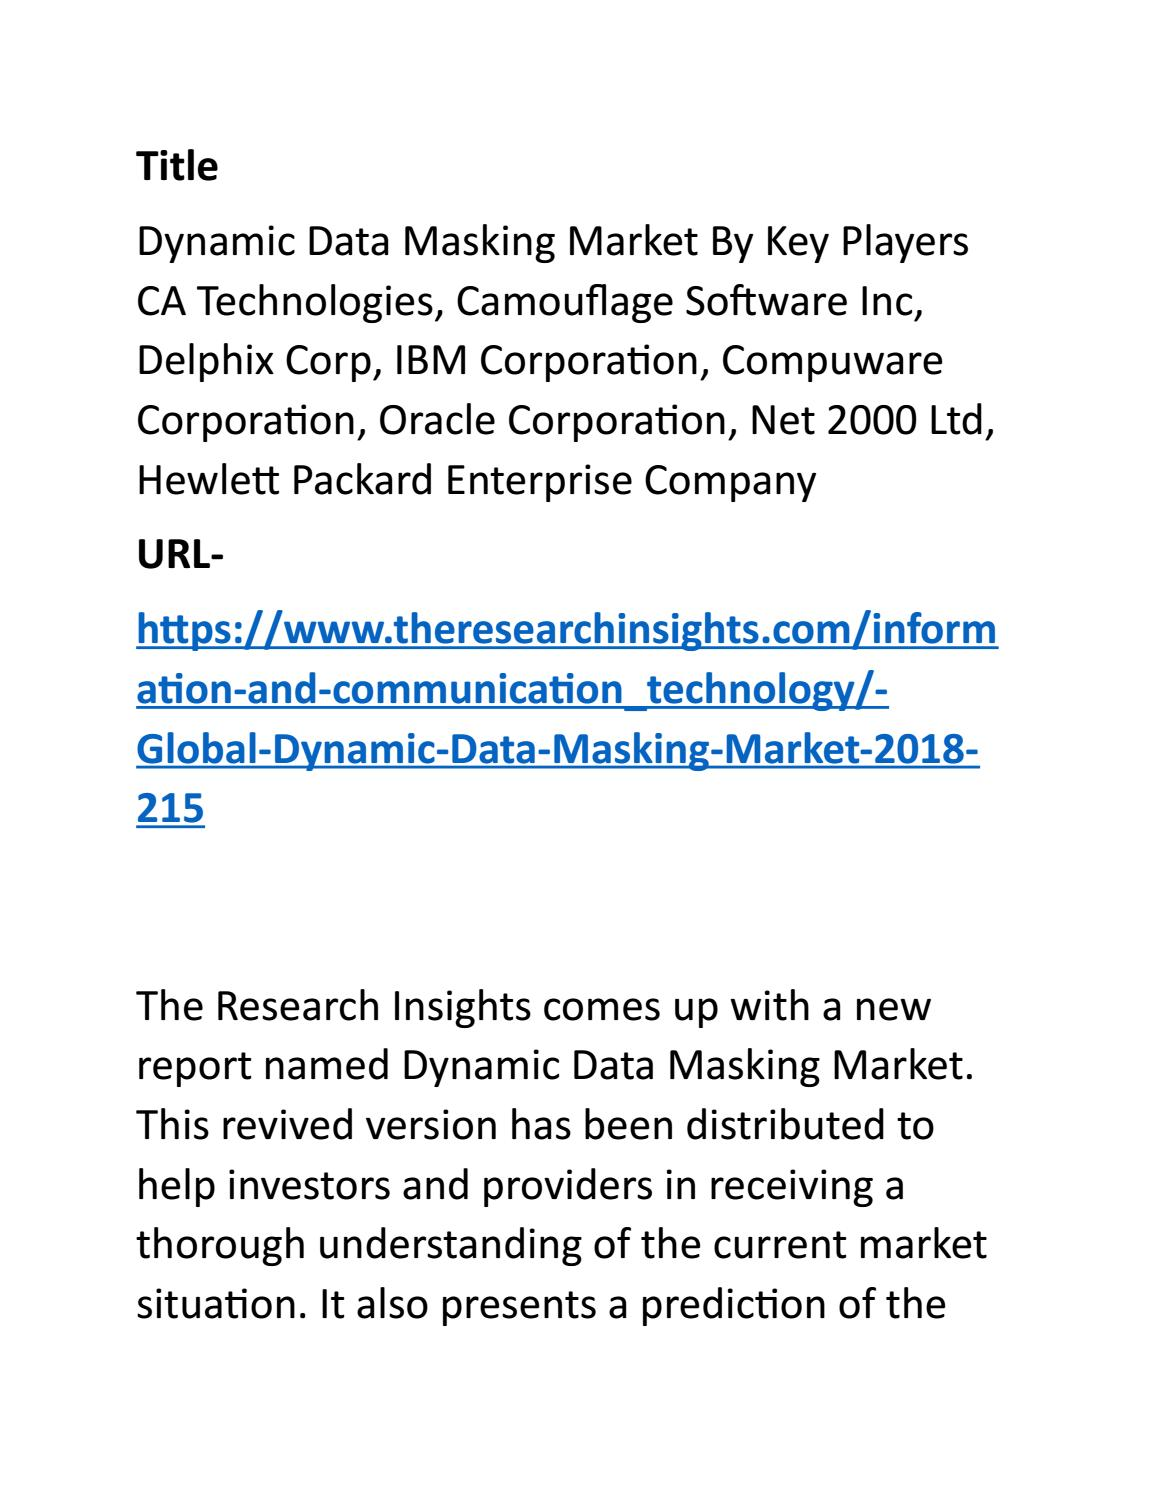 Dynamic Data Masking Market By Key Players in Future Years